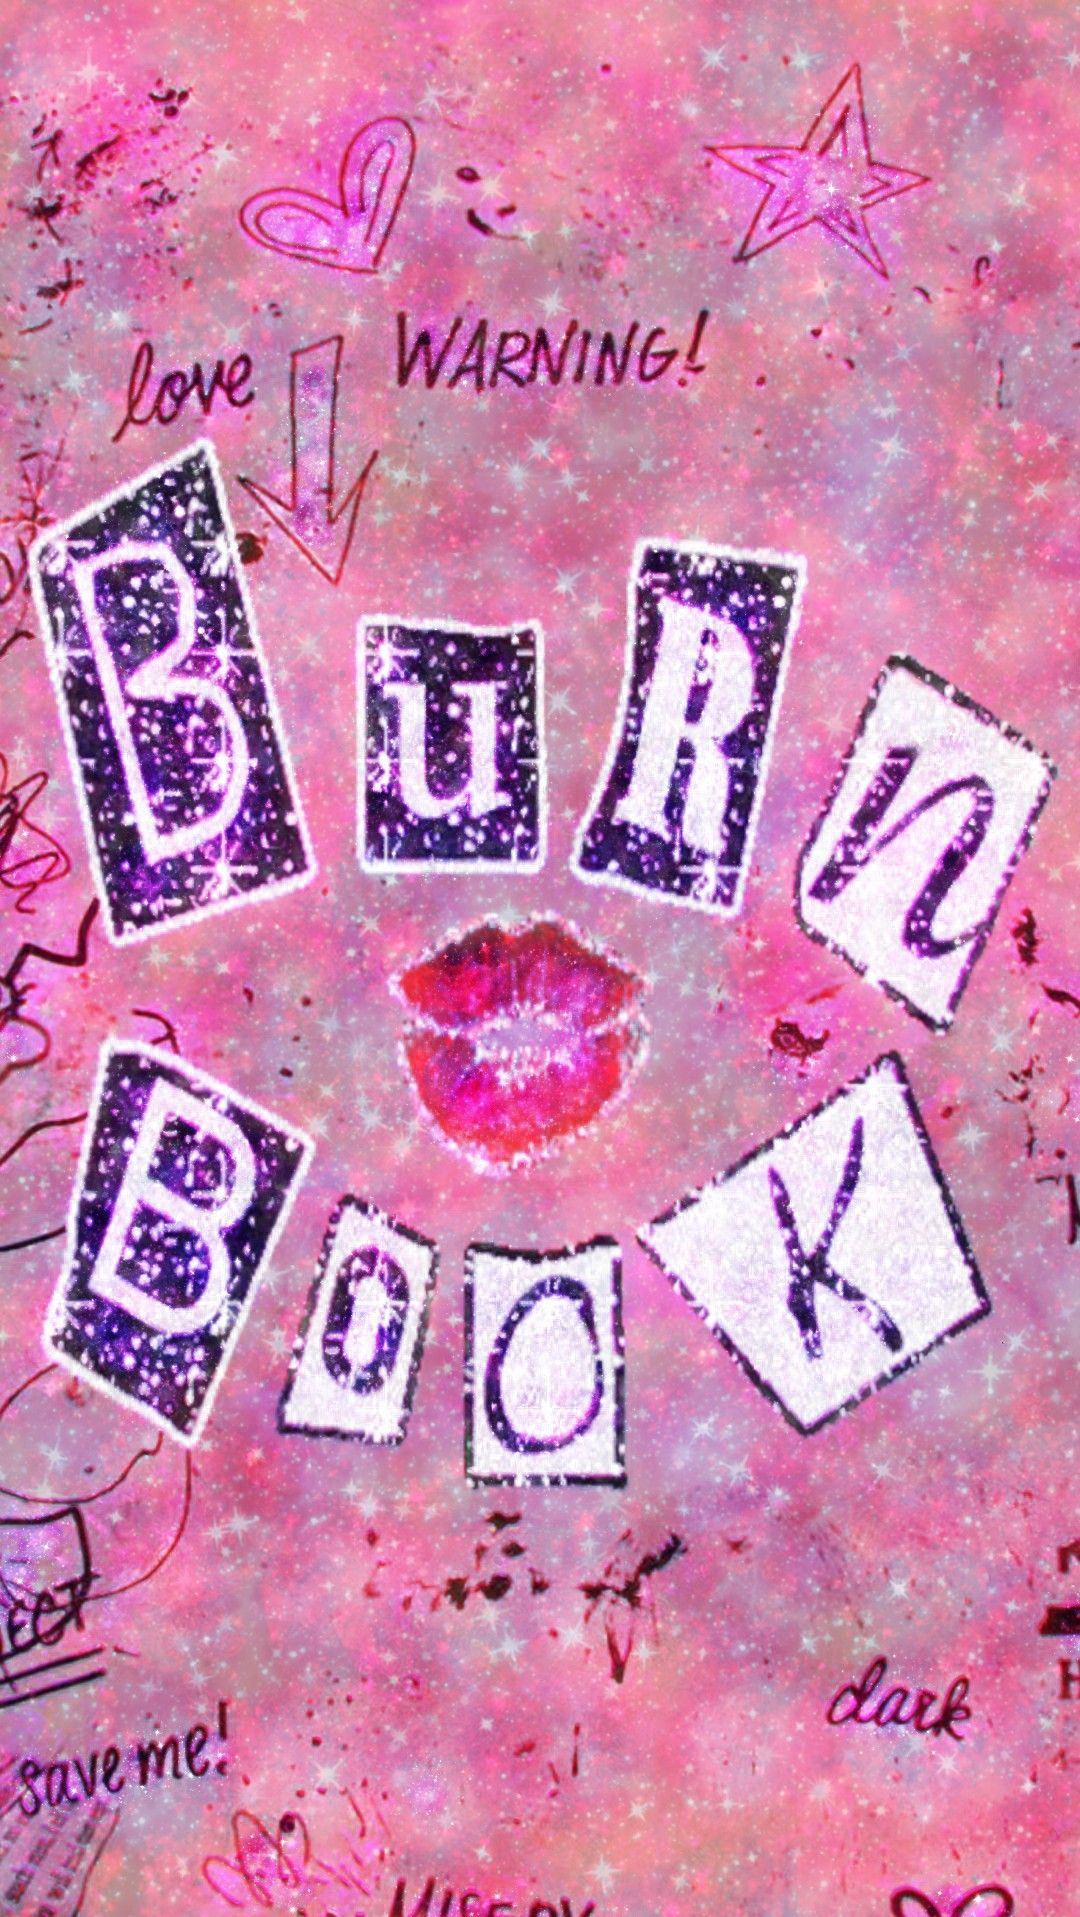 Burn Book Galaxy Made By Me Pink Galaxy Wallpapers Backgrounds Glitter Sparkles Girl Iphone Wallpaper Girly Pastel Pink Aesthetic Pink Tumblr Aesthetic